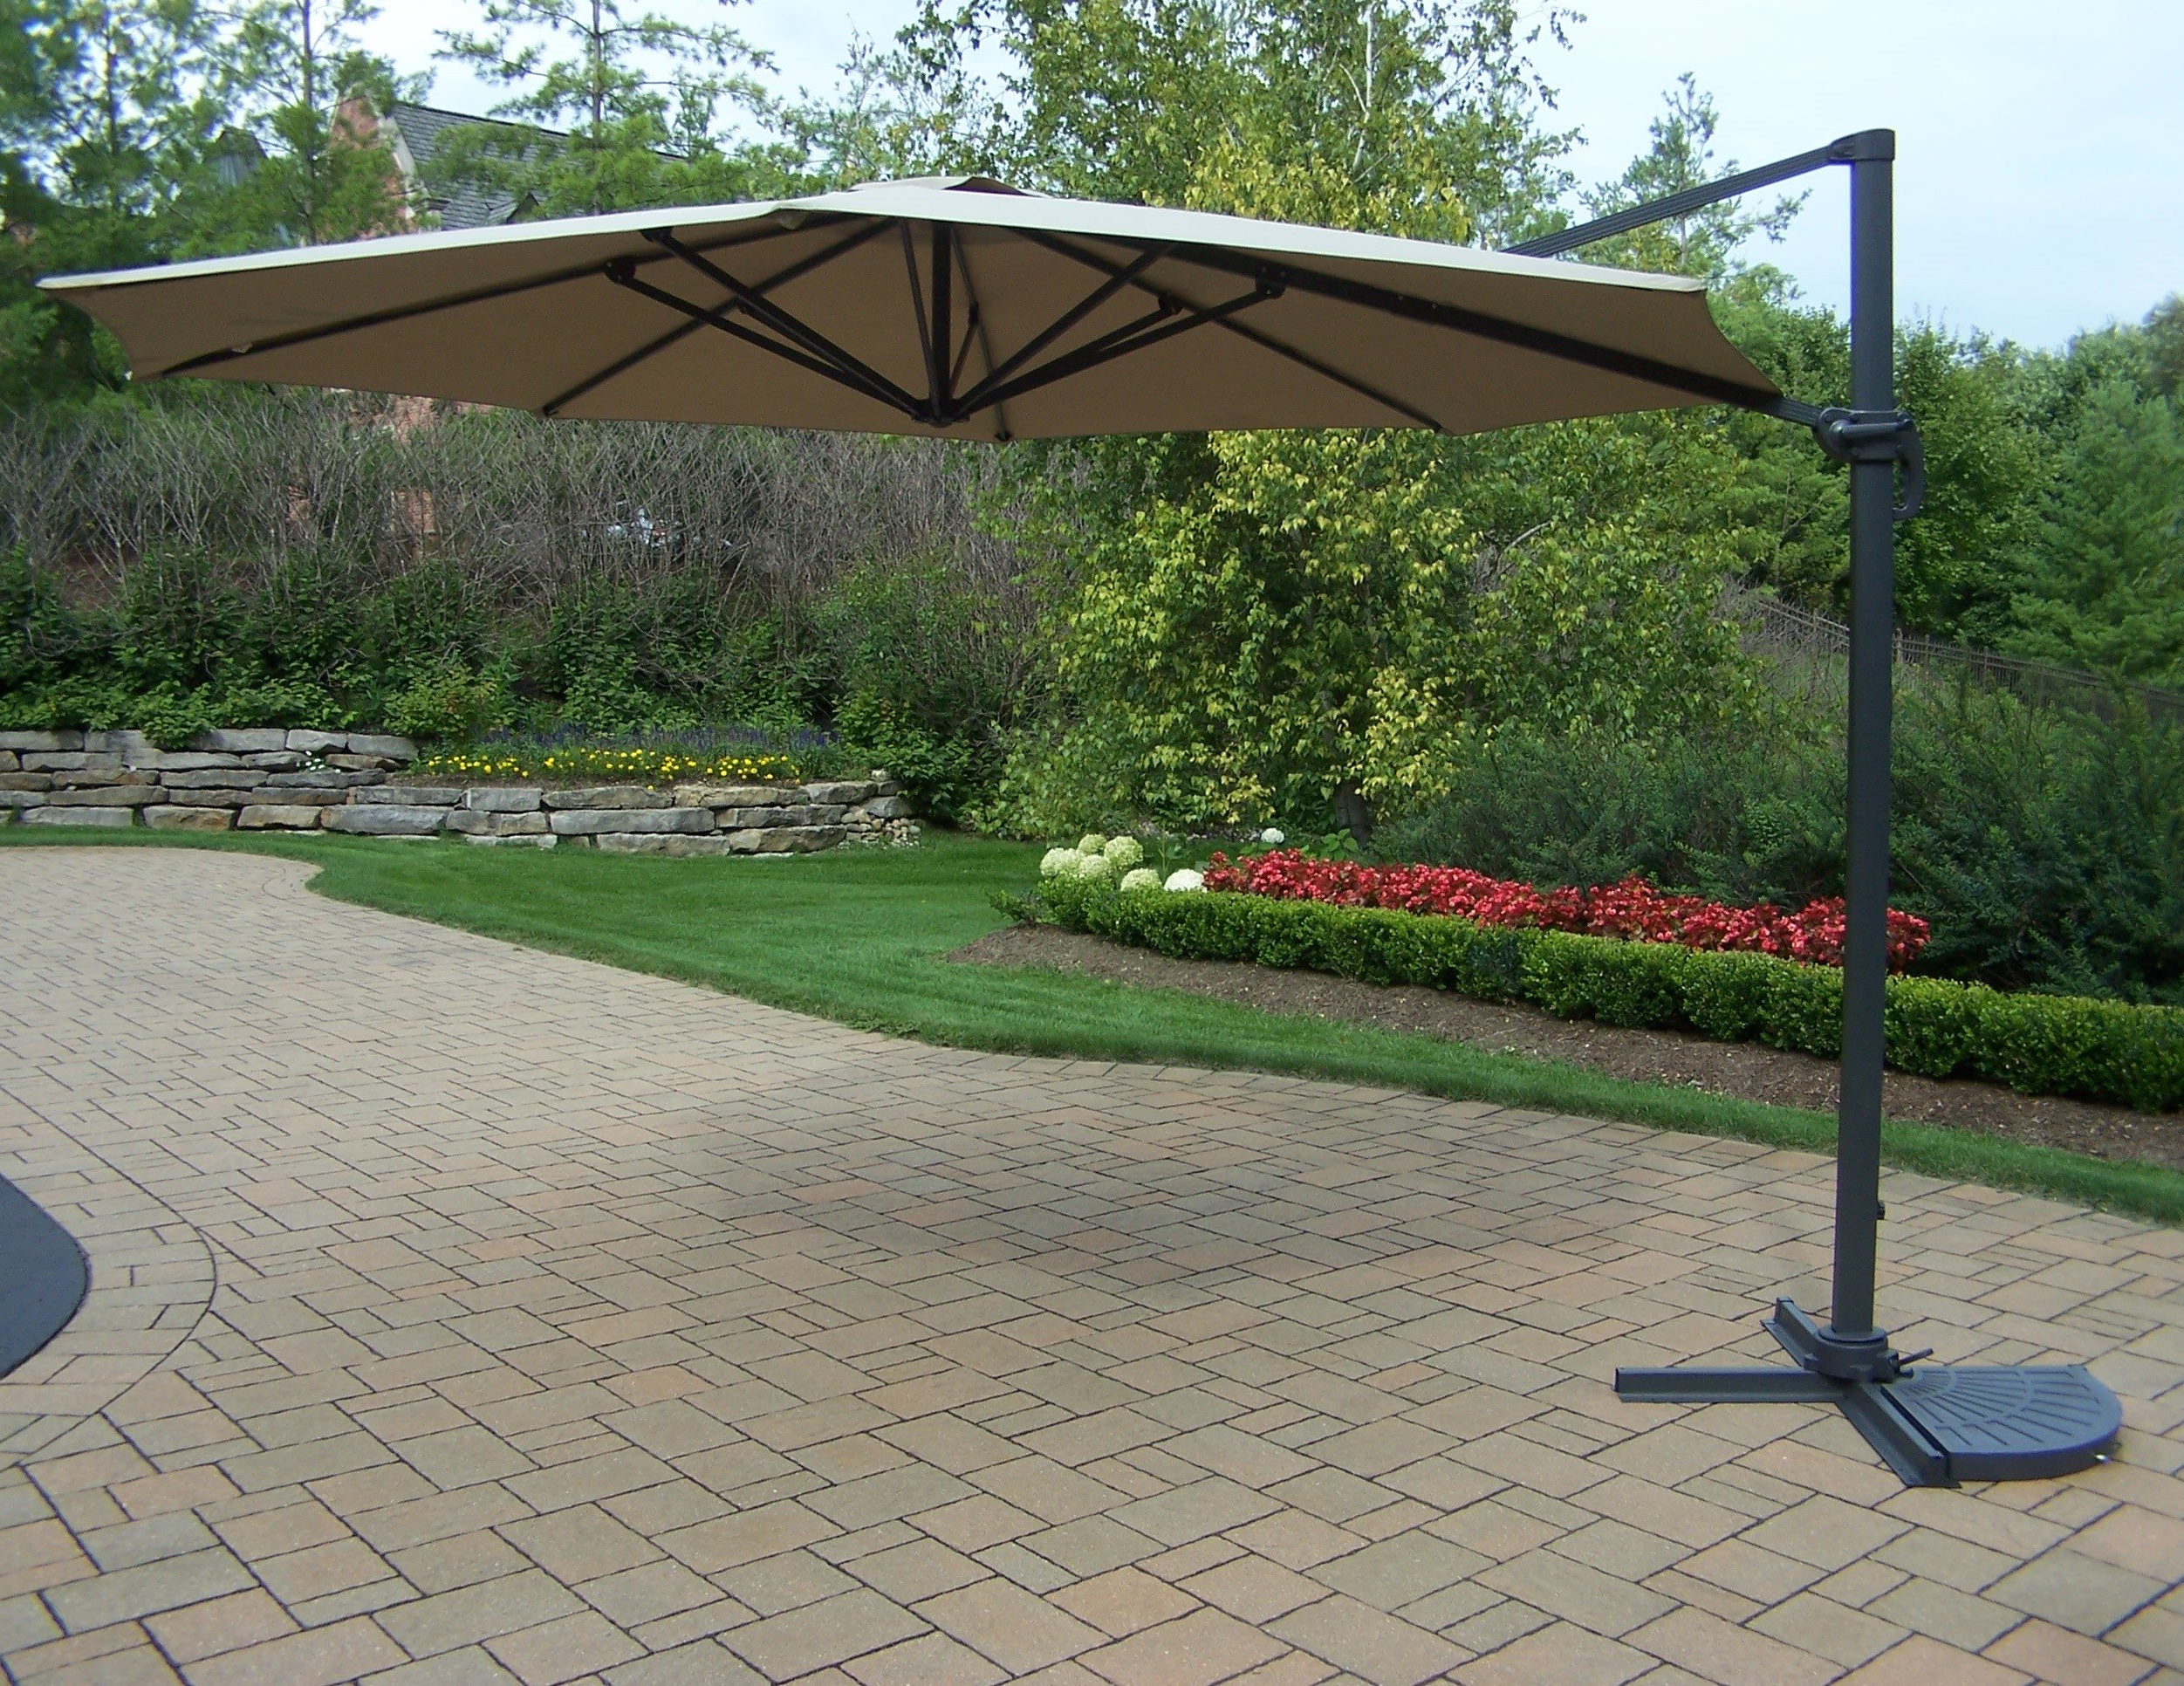 Popular Olen Cantilever Umbrellas With Regard To 11' Cantilever Umbrella (View 16 of 20)